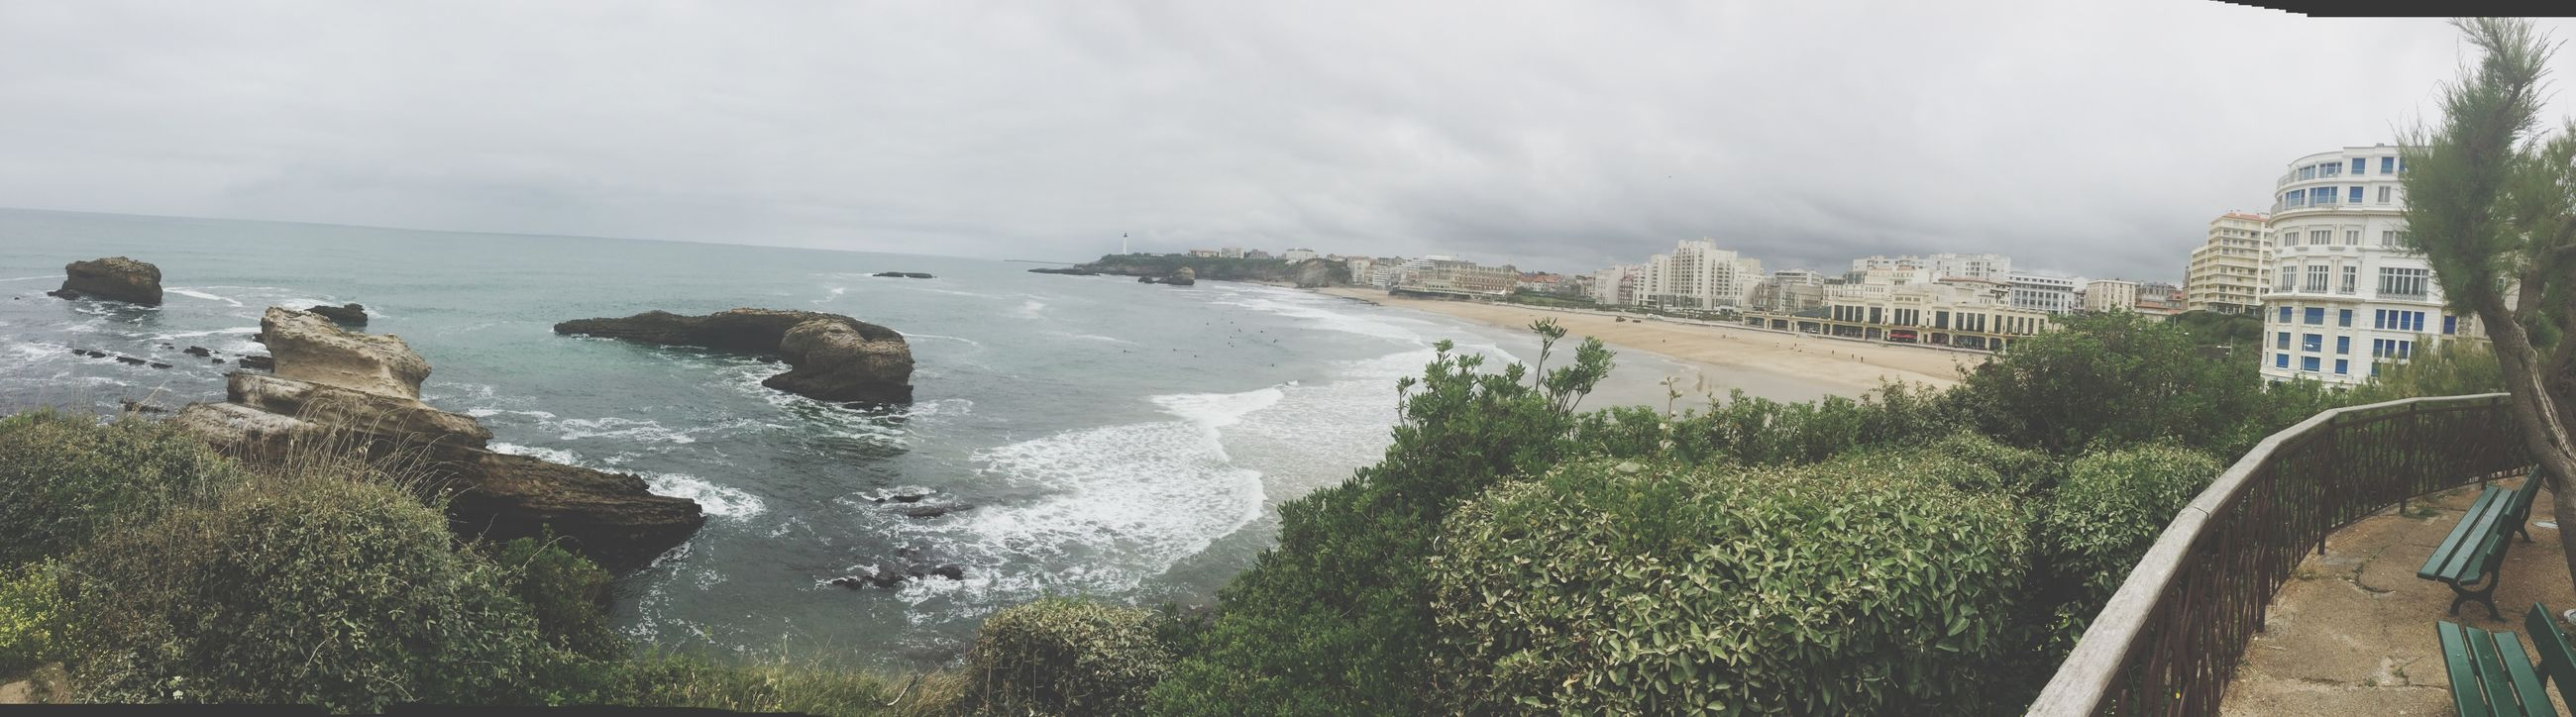 Taking Photos Sunset Summer Sea Panorama Sudouest IPhoneography Biarritz Landscape Photography